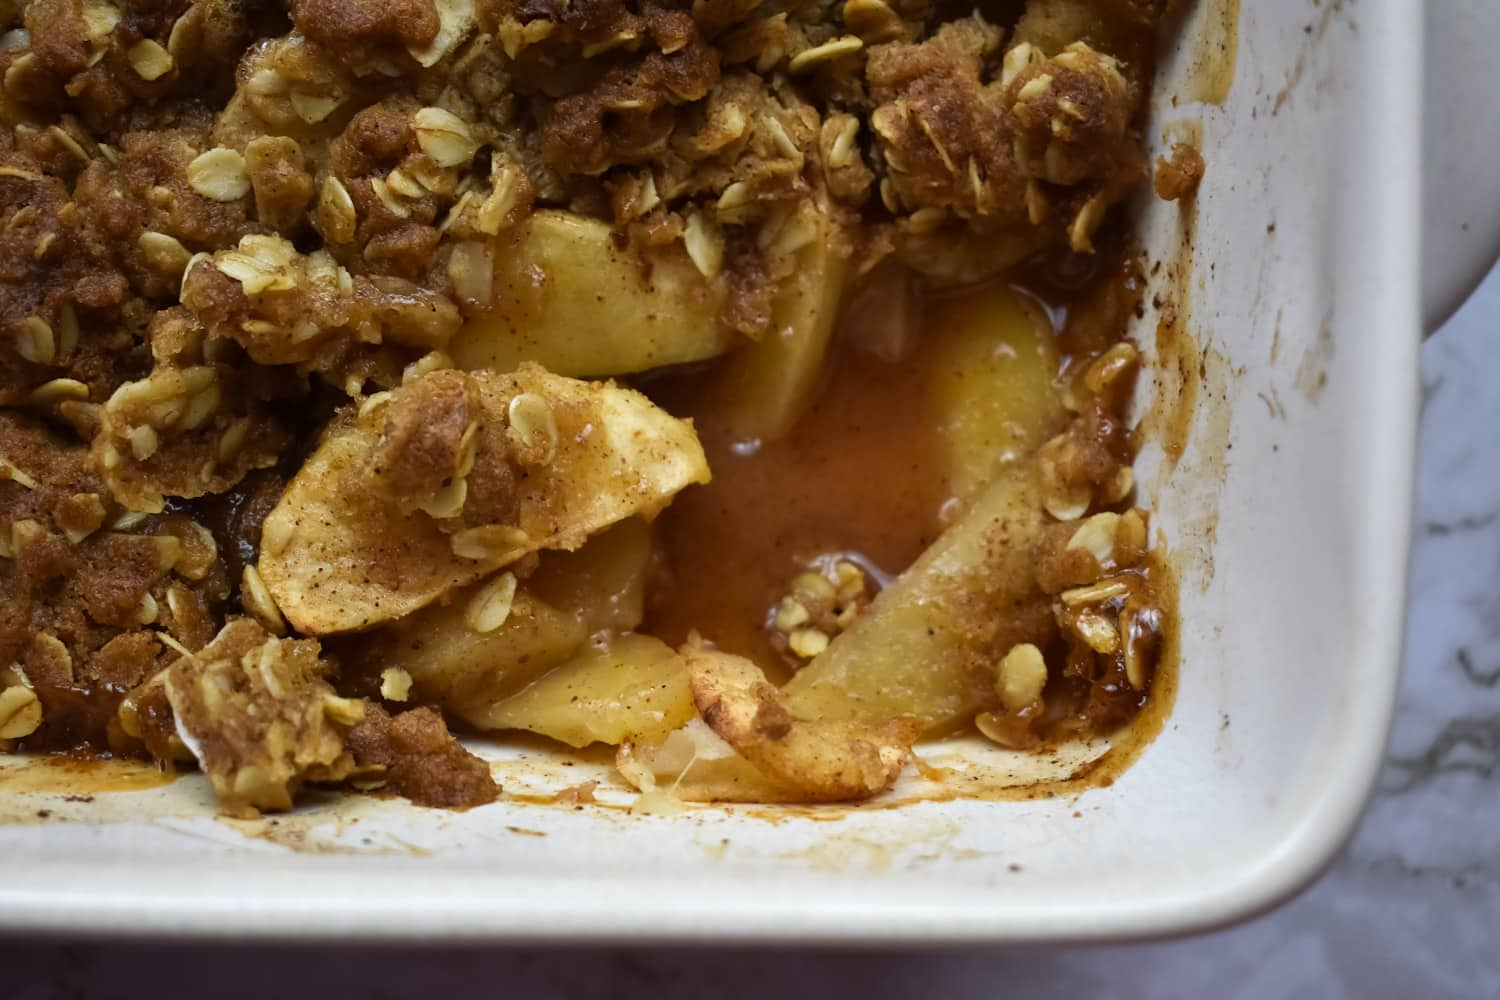 Apple crumble in a baking dish on a marble surface